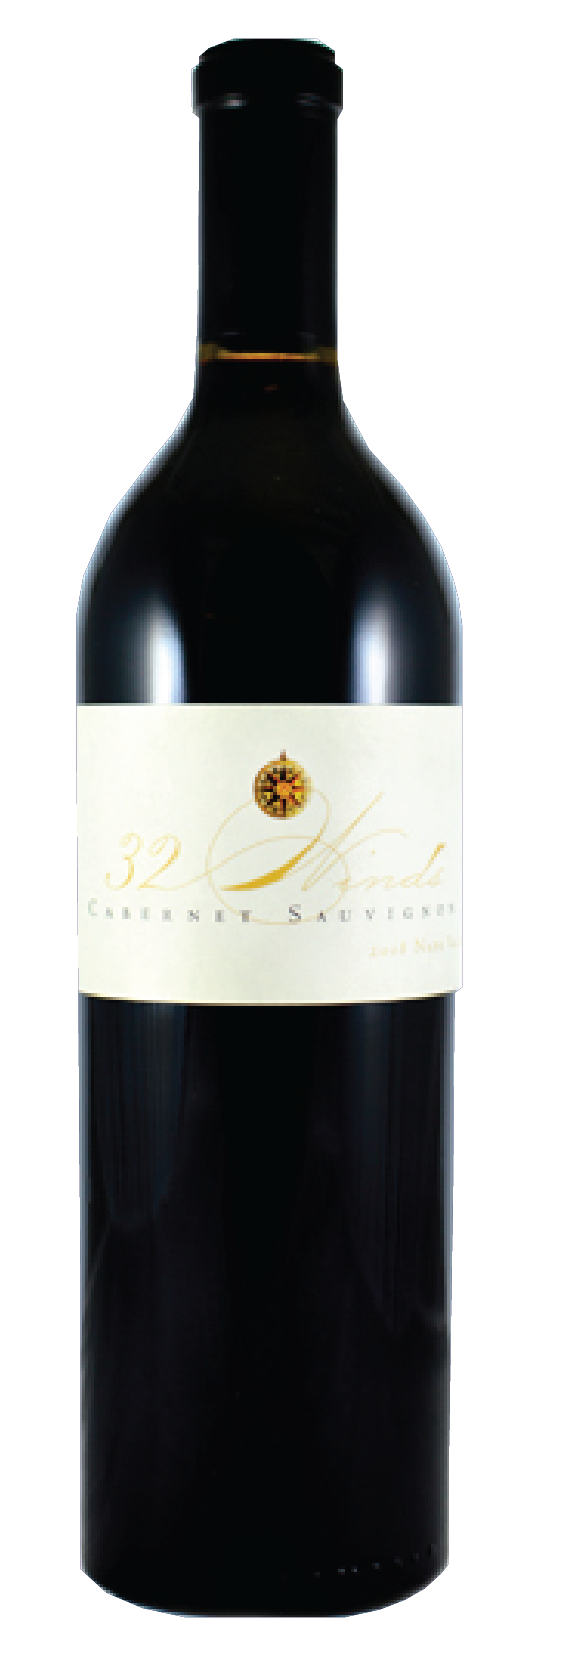 2010 Cabernet Sauvignon Diamond Mountain Napa Valley MAGNUM